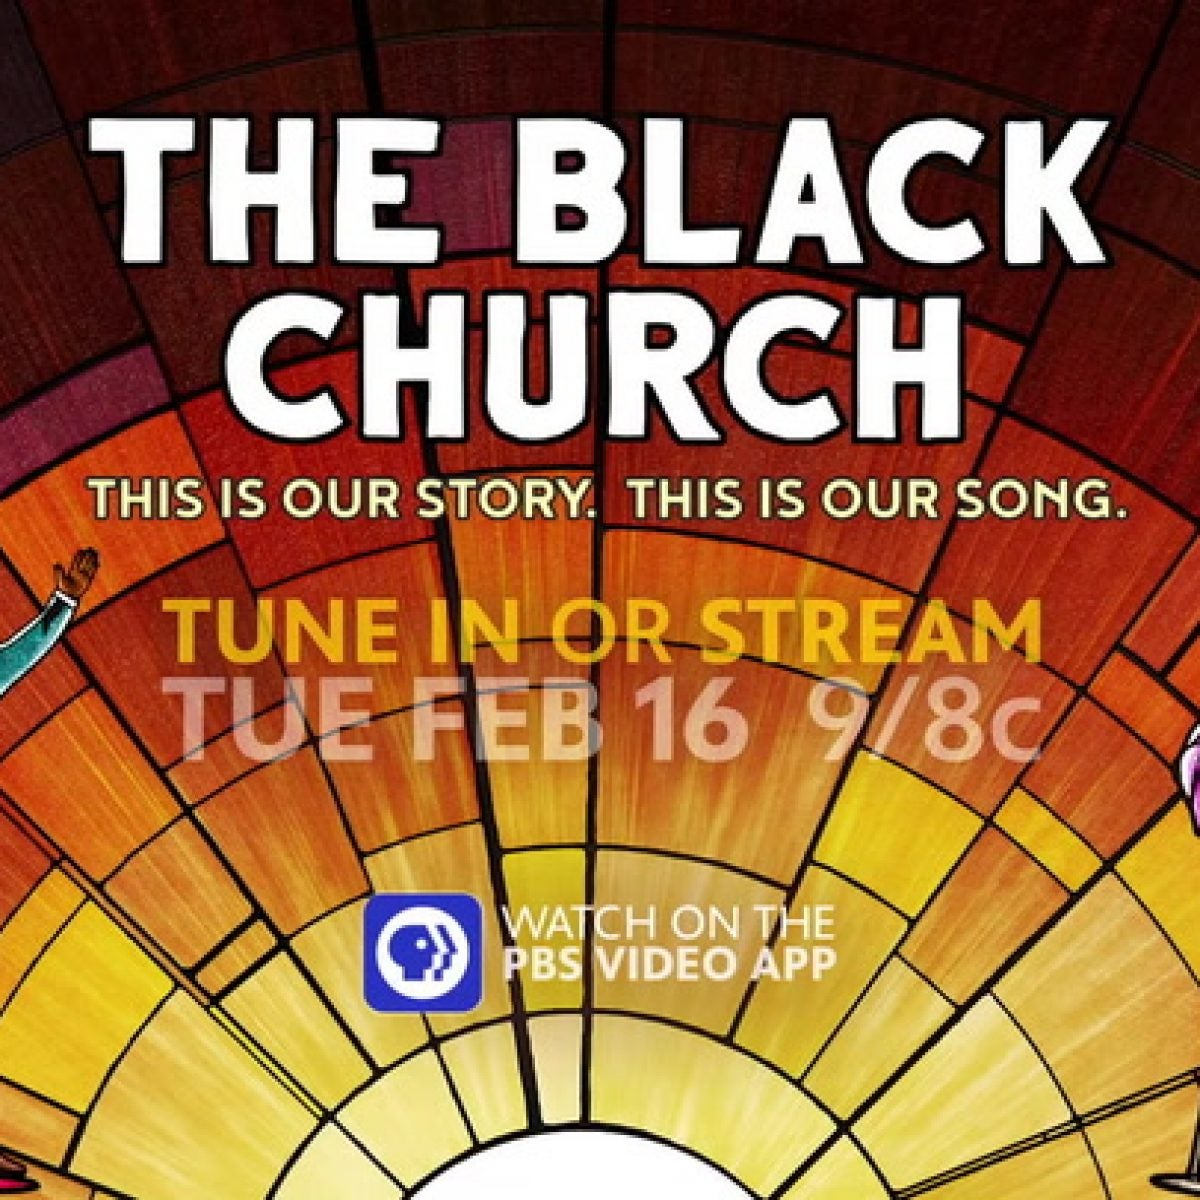 Watch The Black Church: This Is Our Story, This Is Our Song Sponsored By PBS